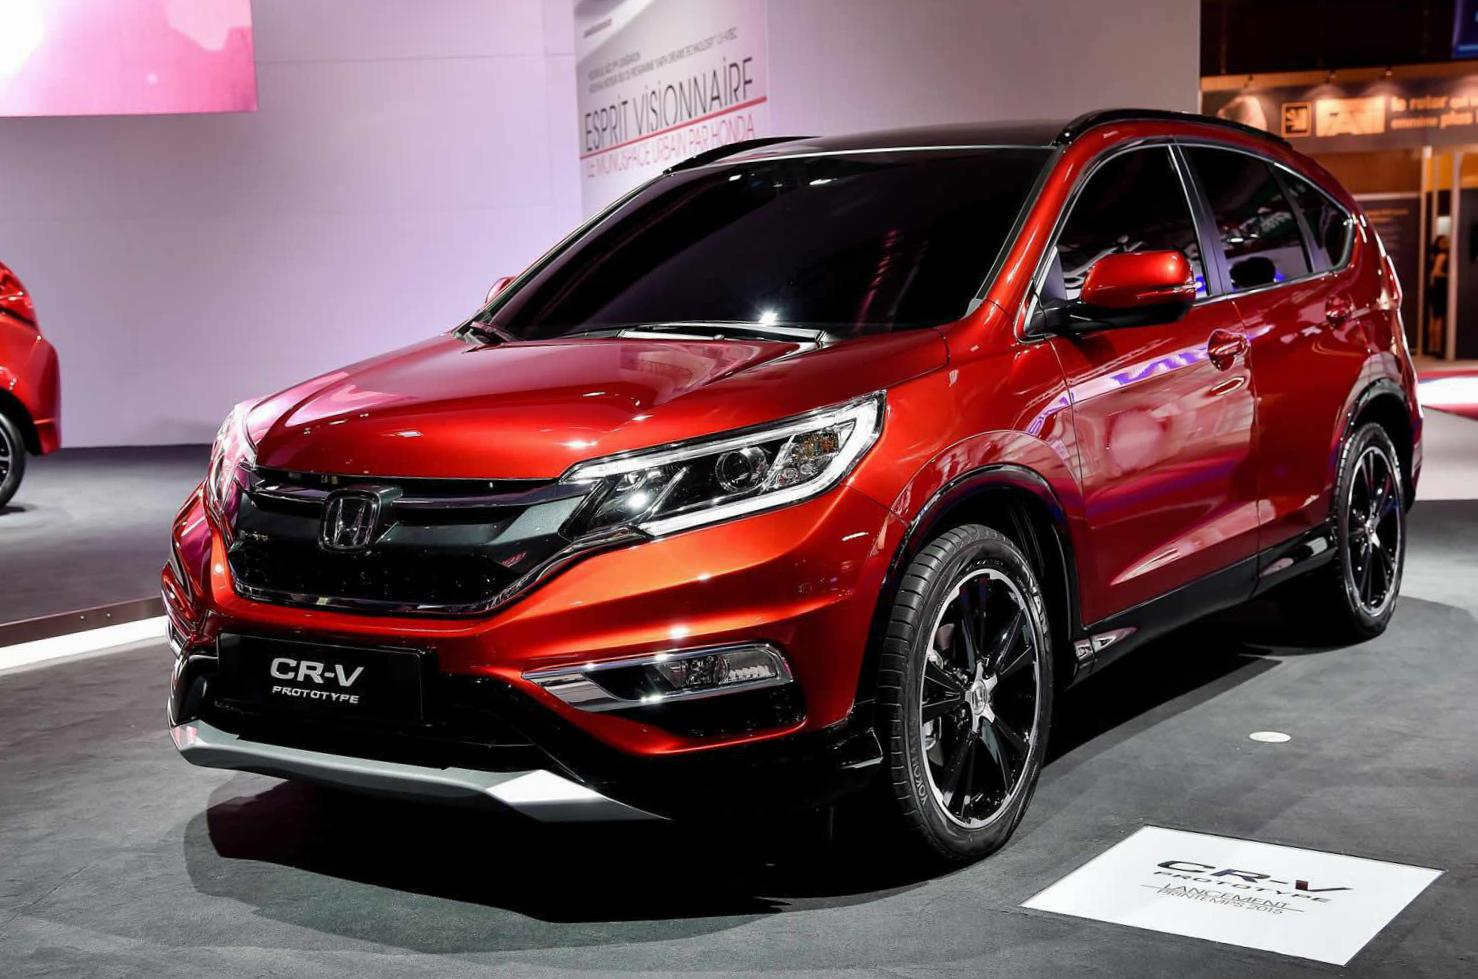 Honda CR-V Specifications 2010